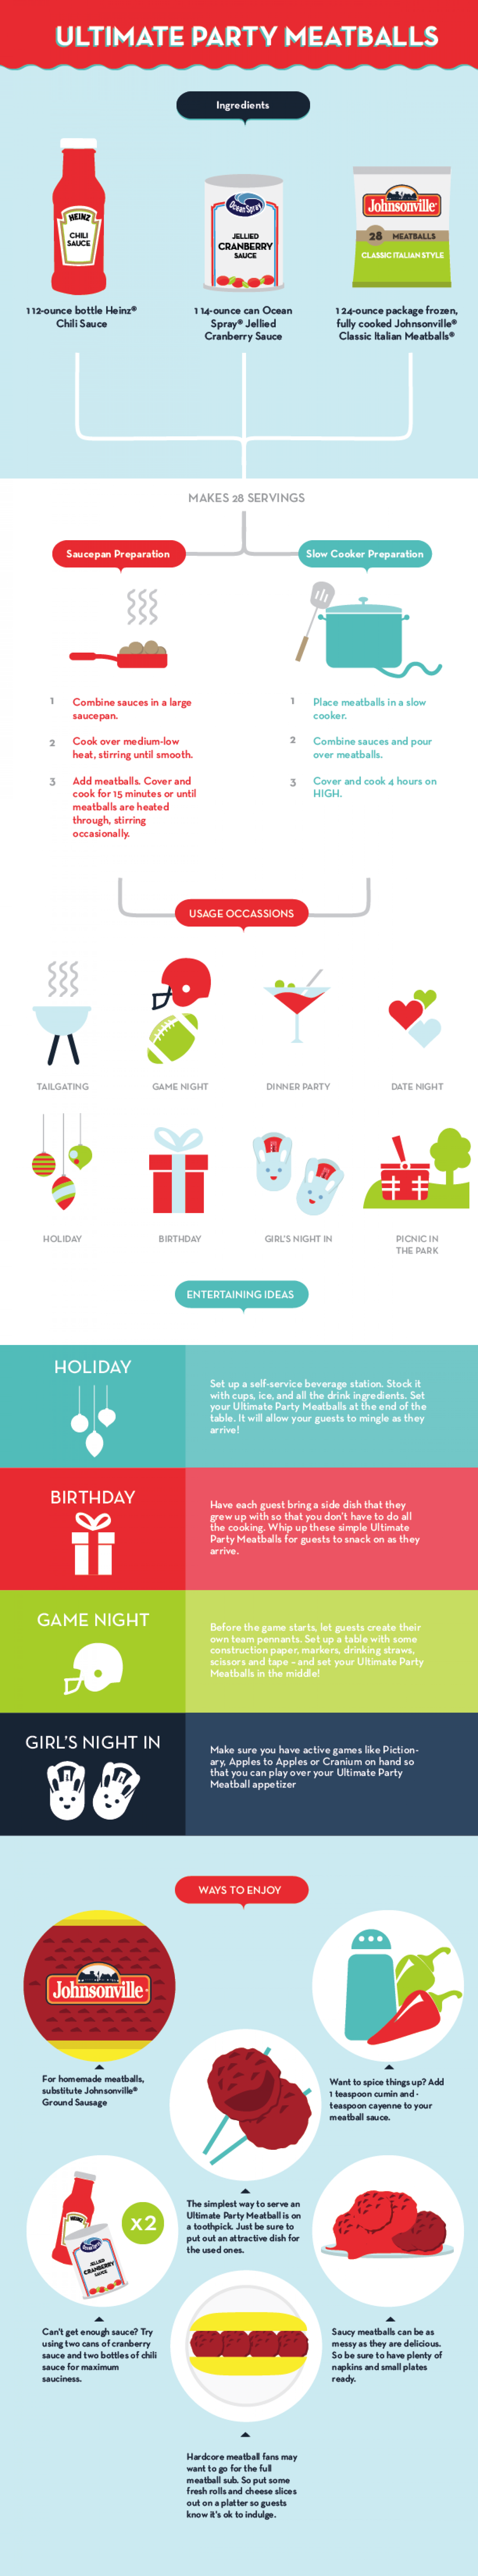 Ultimate Party Meatballs Infographic